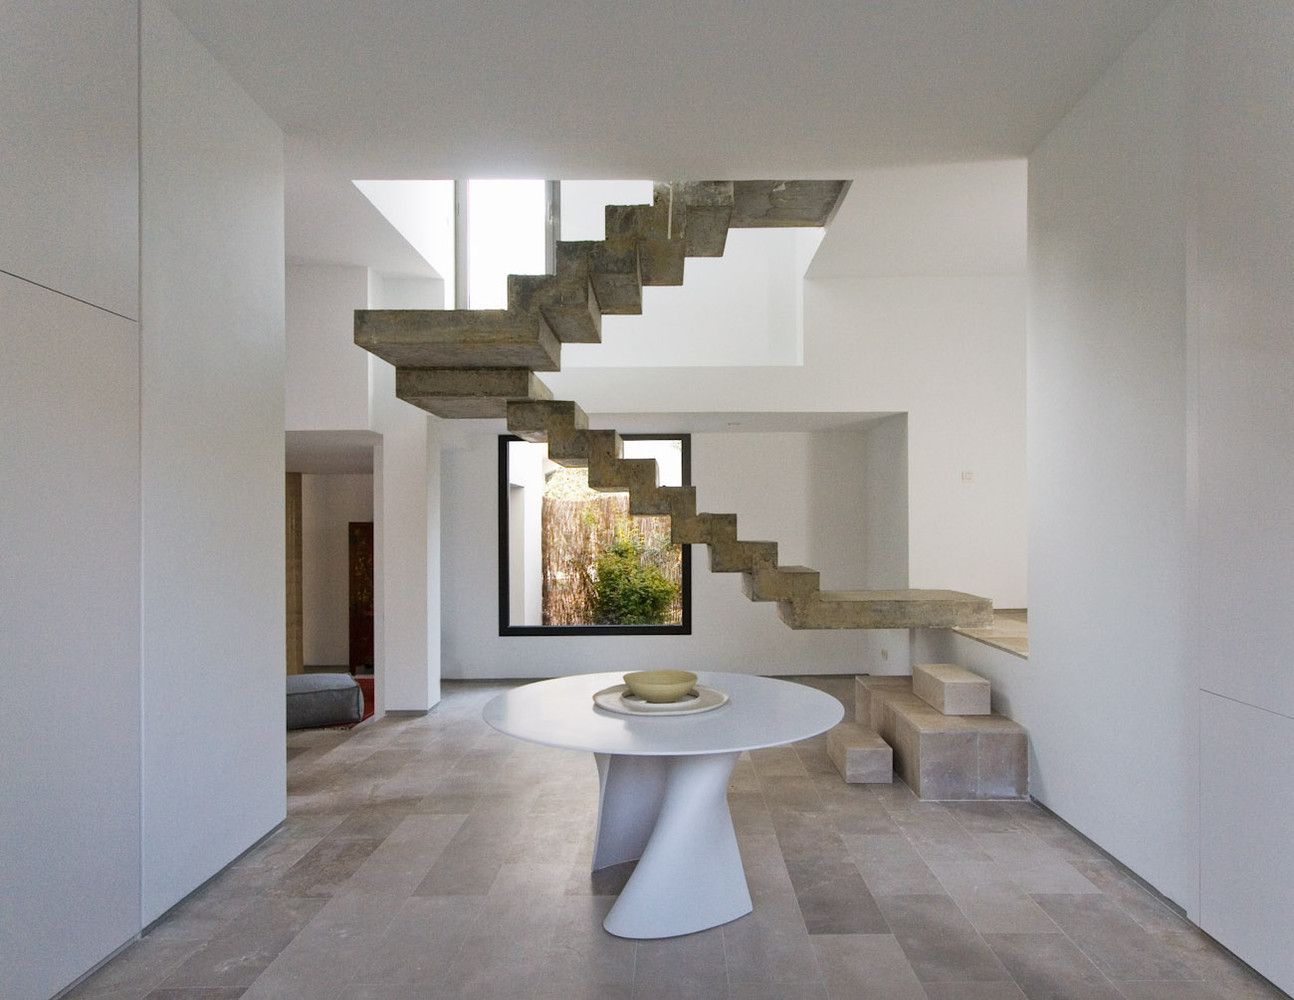 Gallery of c house Ábaton arquitectura trappen